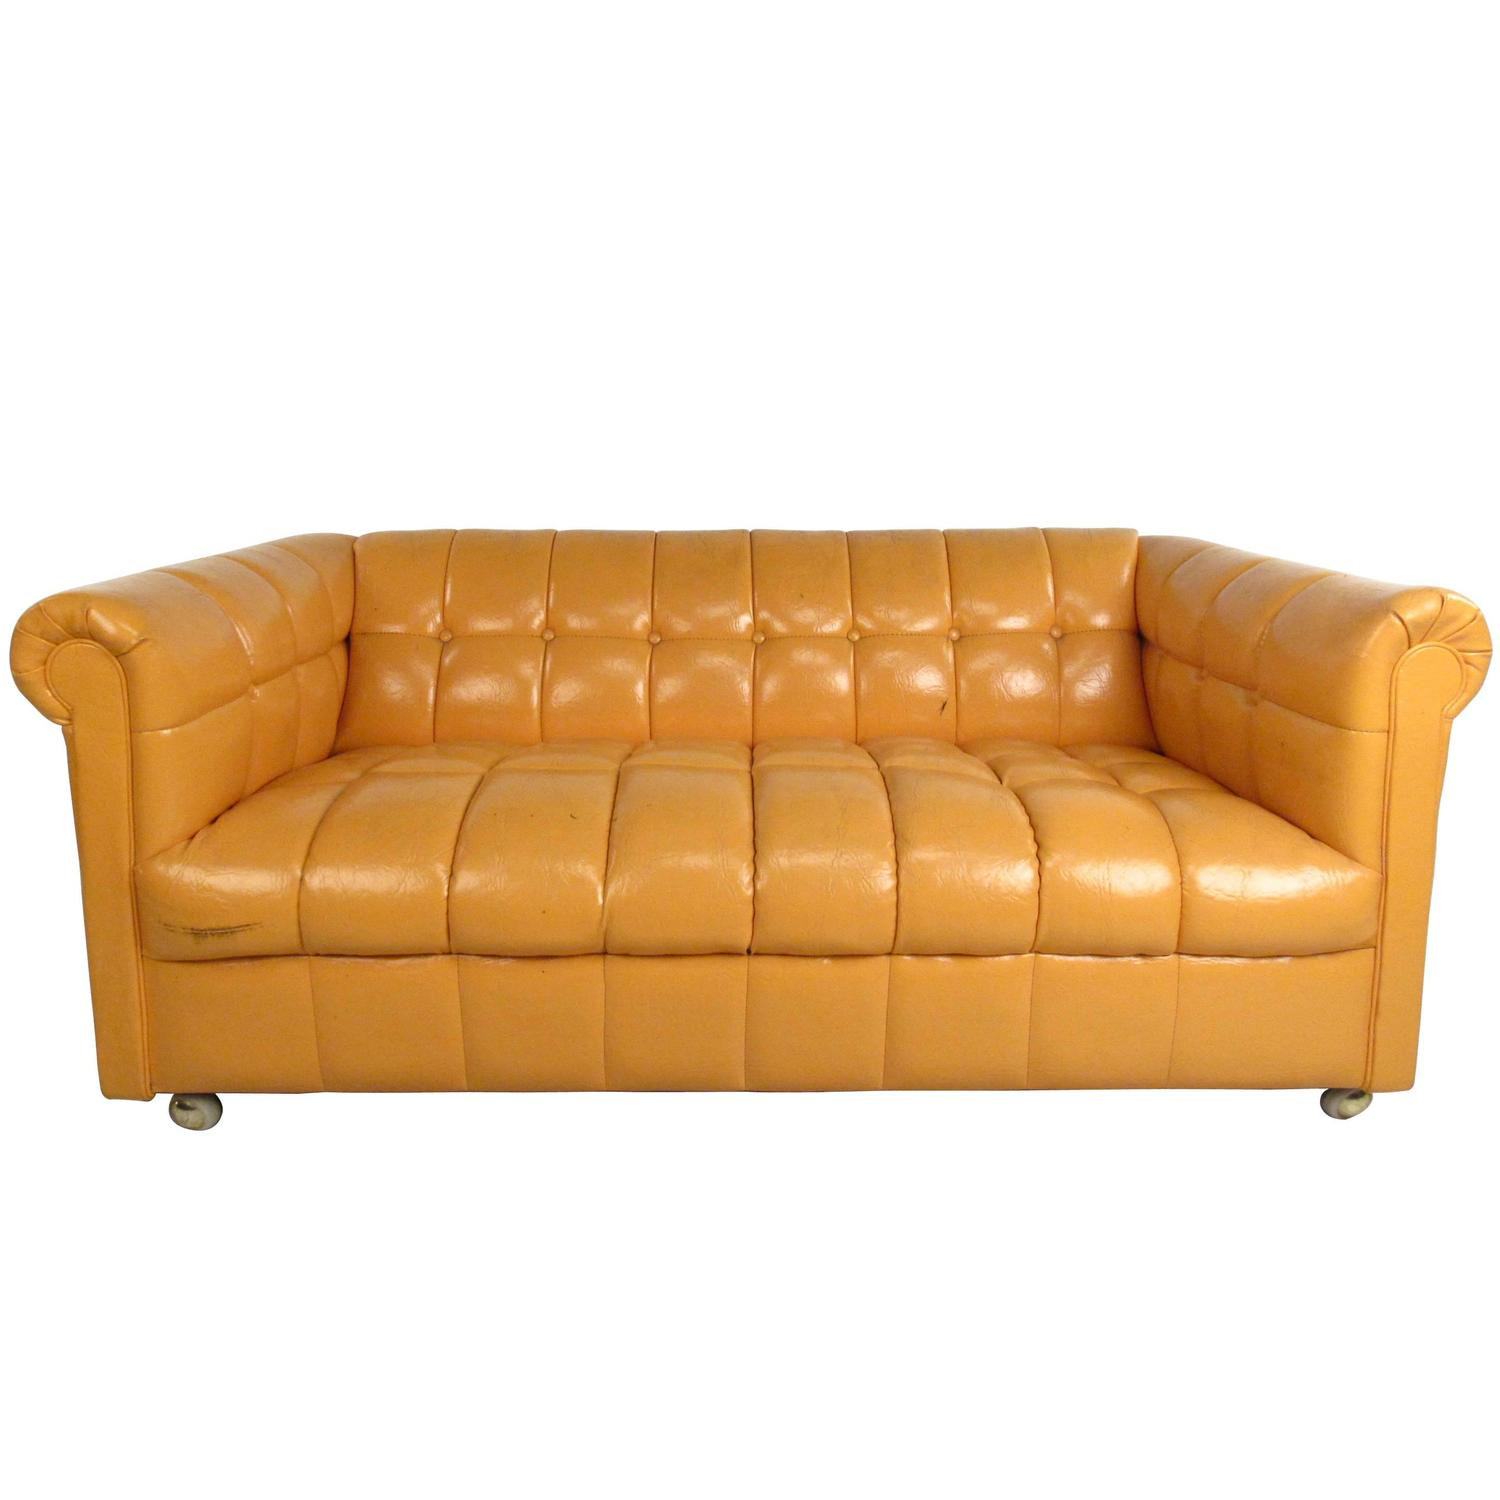 Mid Century Modern Tufted Chesterfield Sofa For Sale At 1stdibs